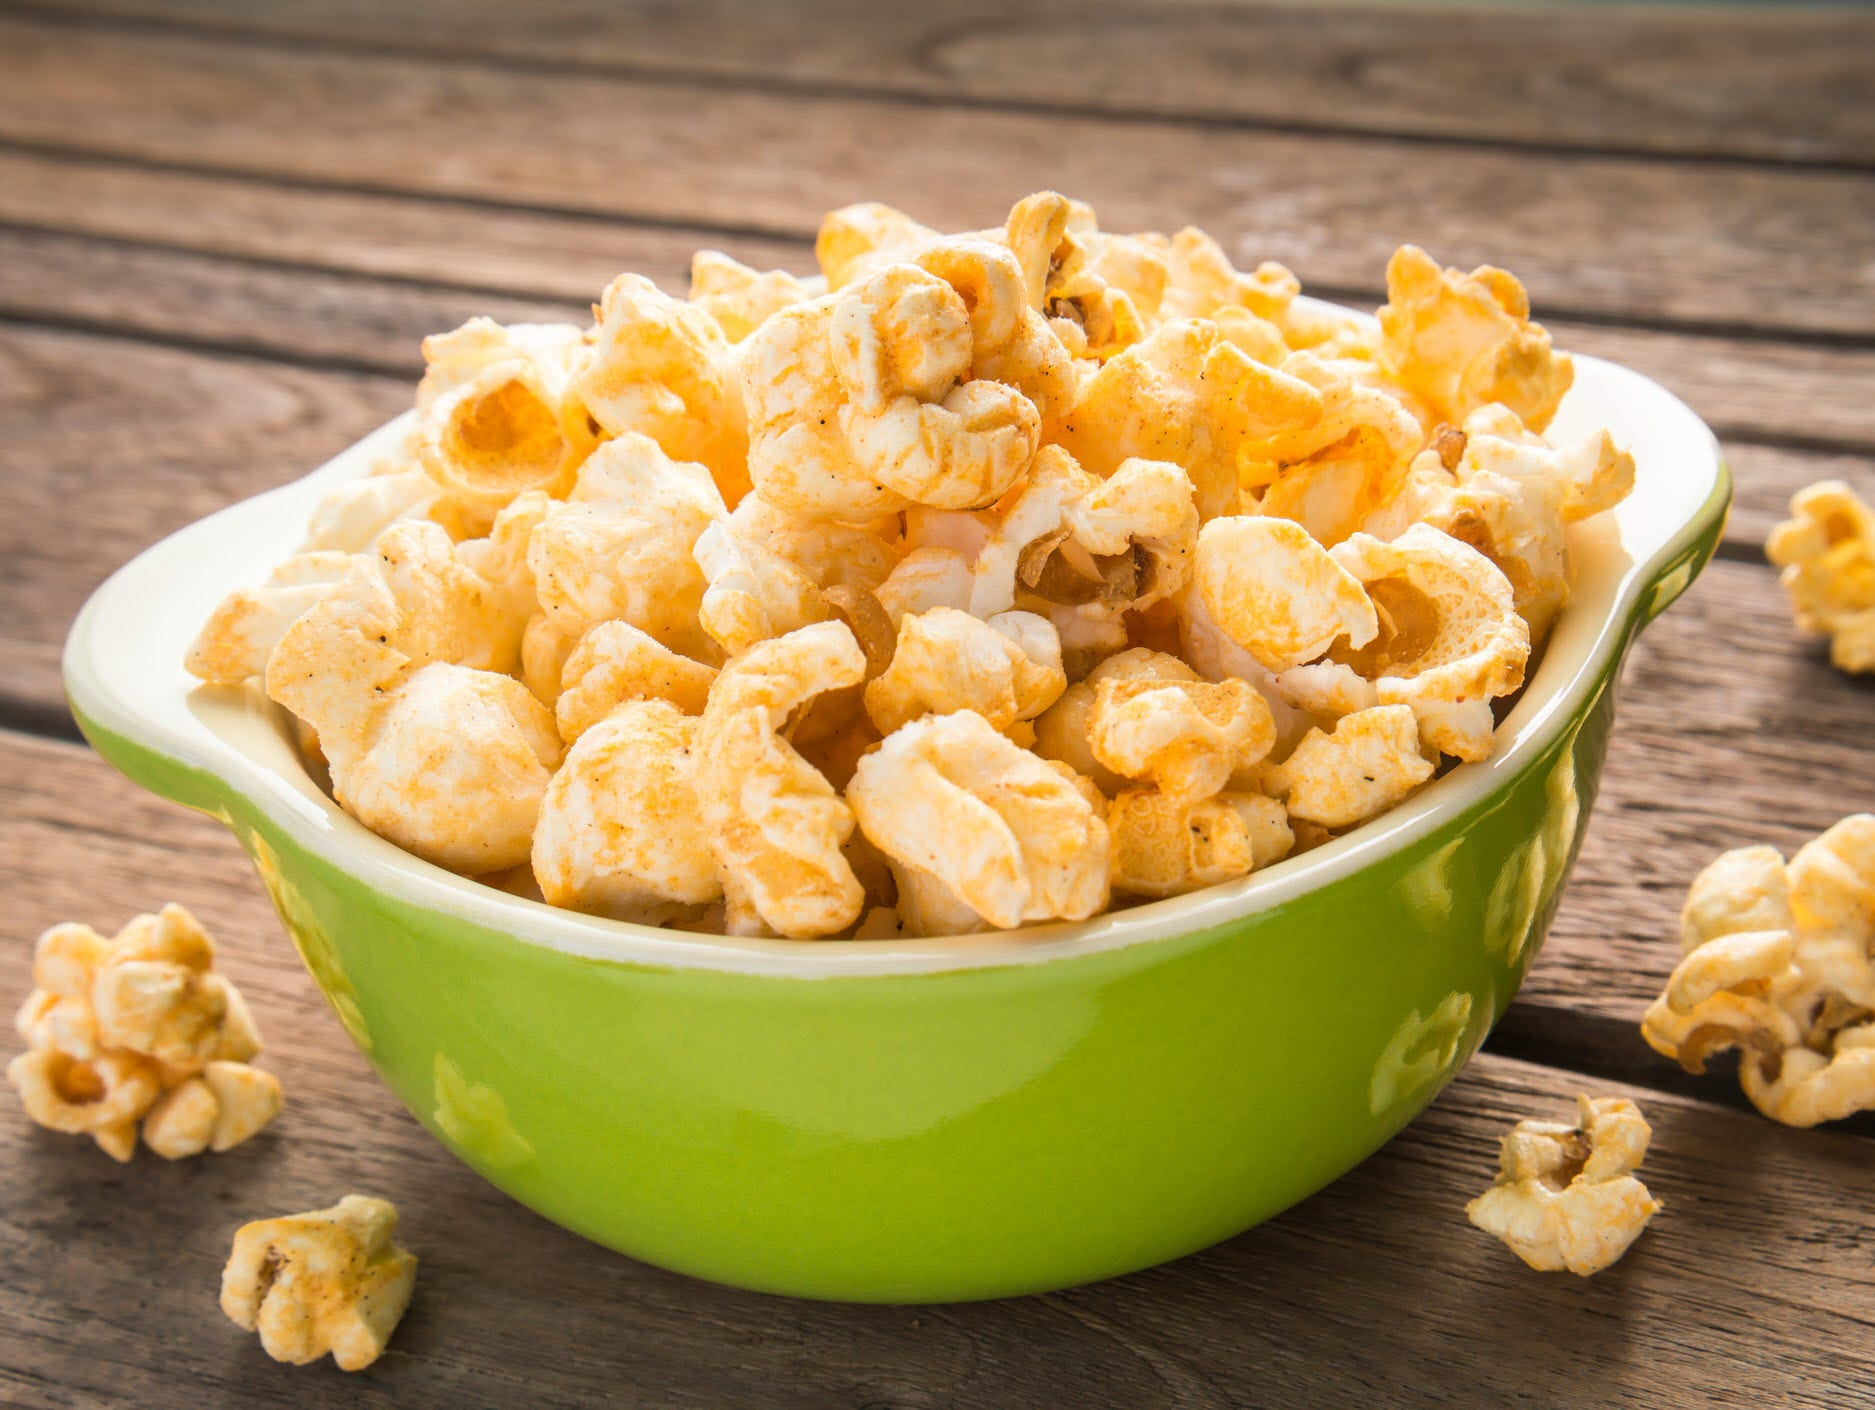 Craving a new snack? Try out this local recipe.